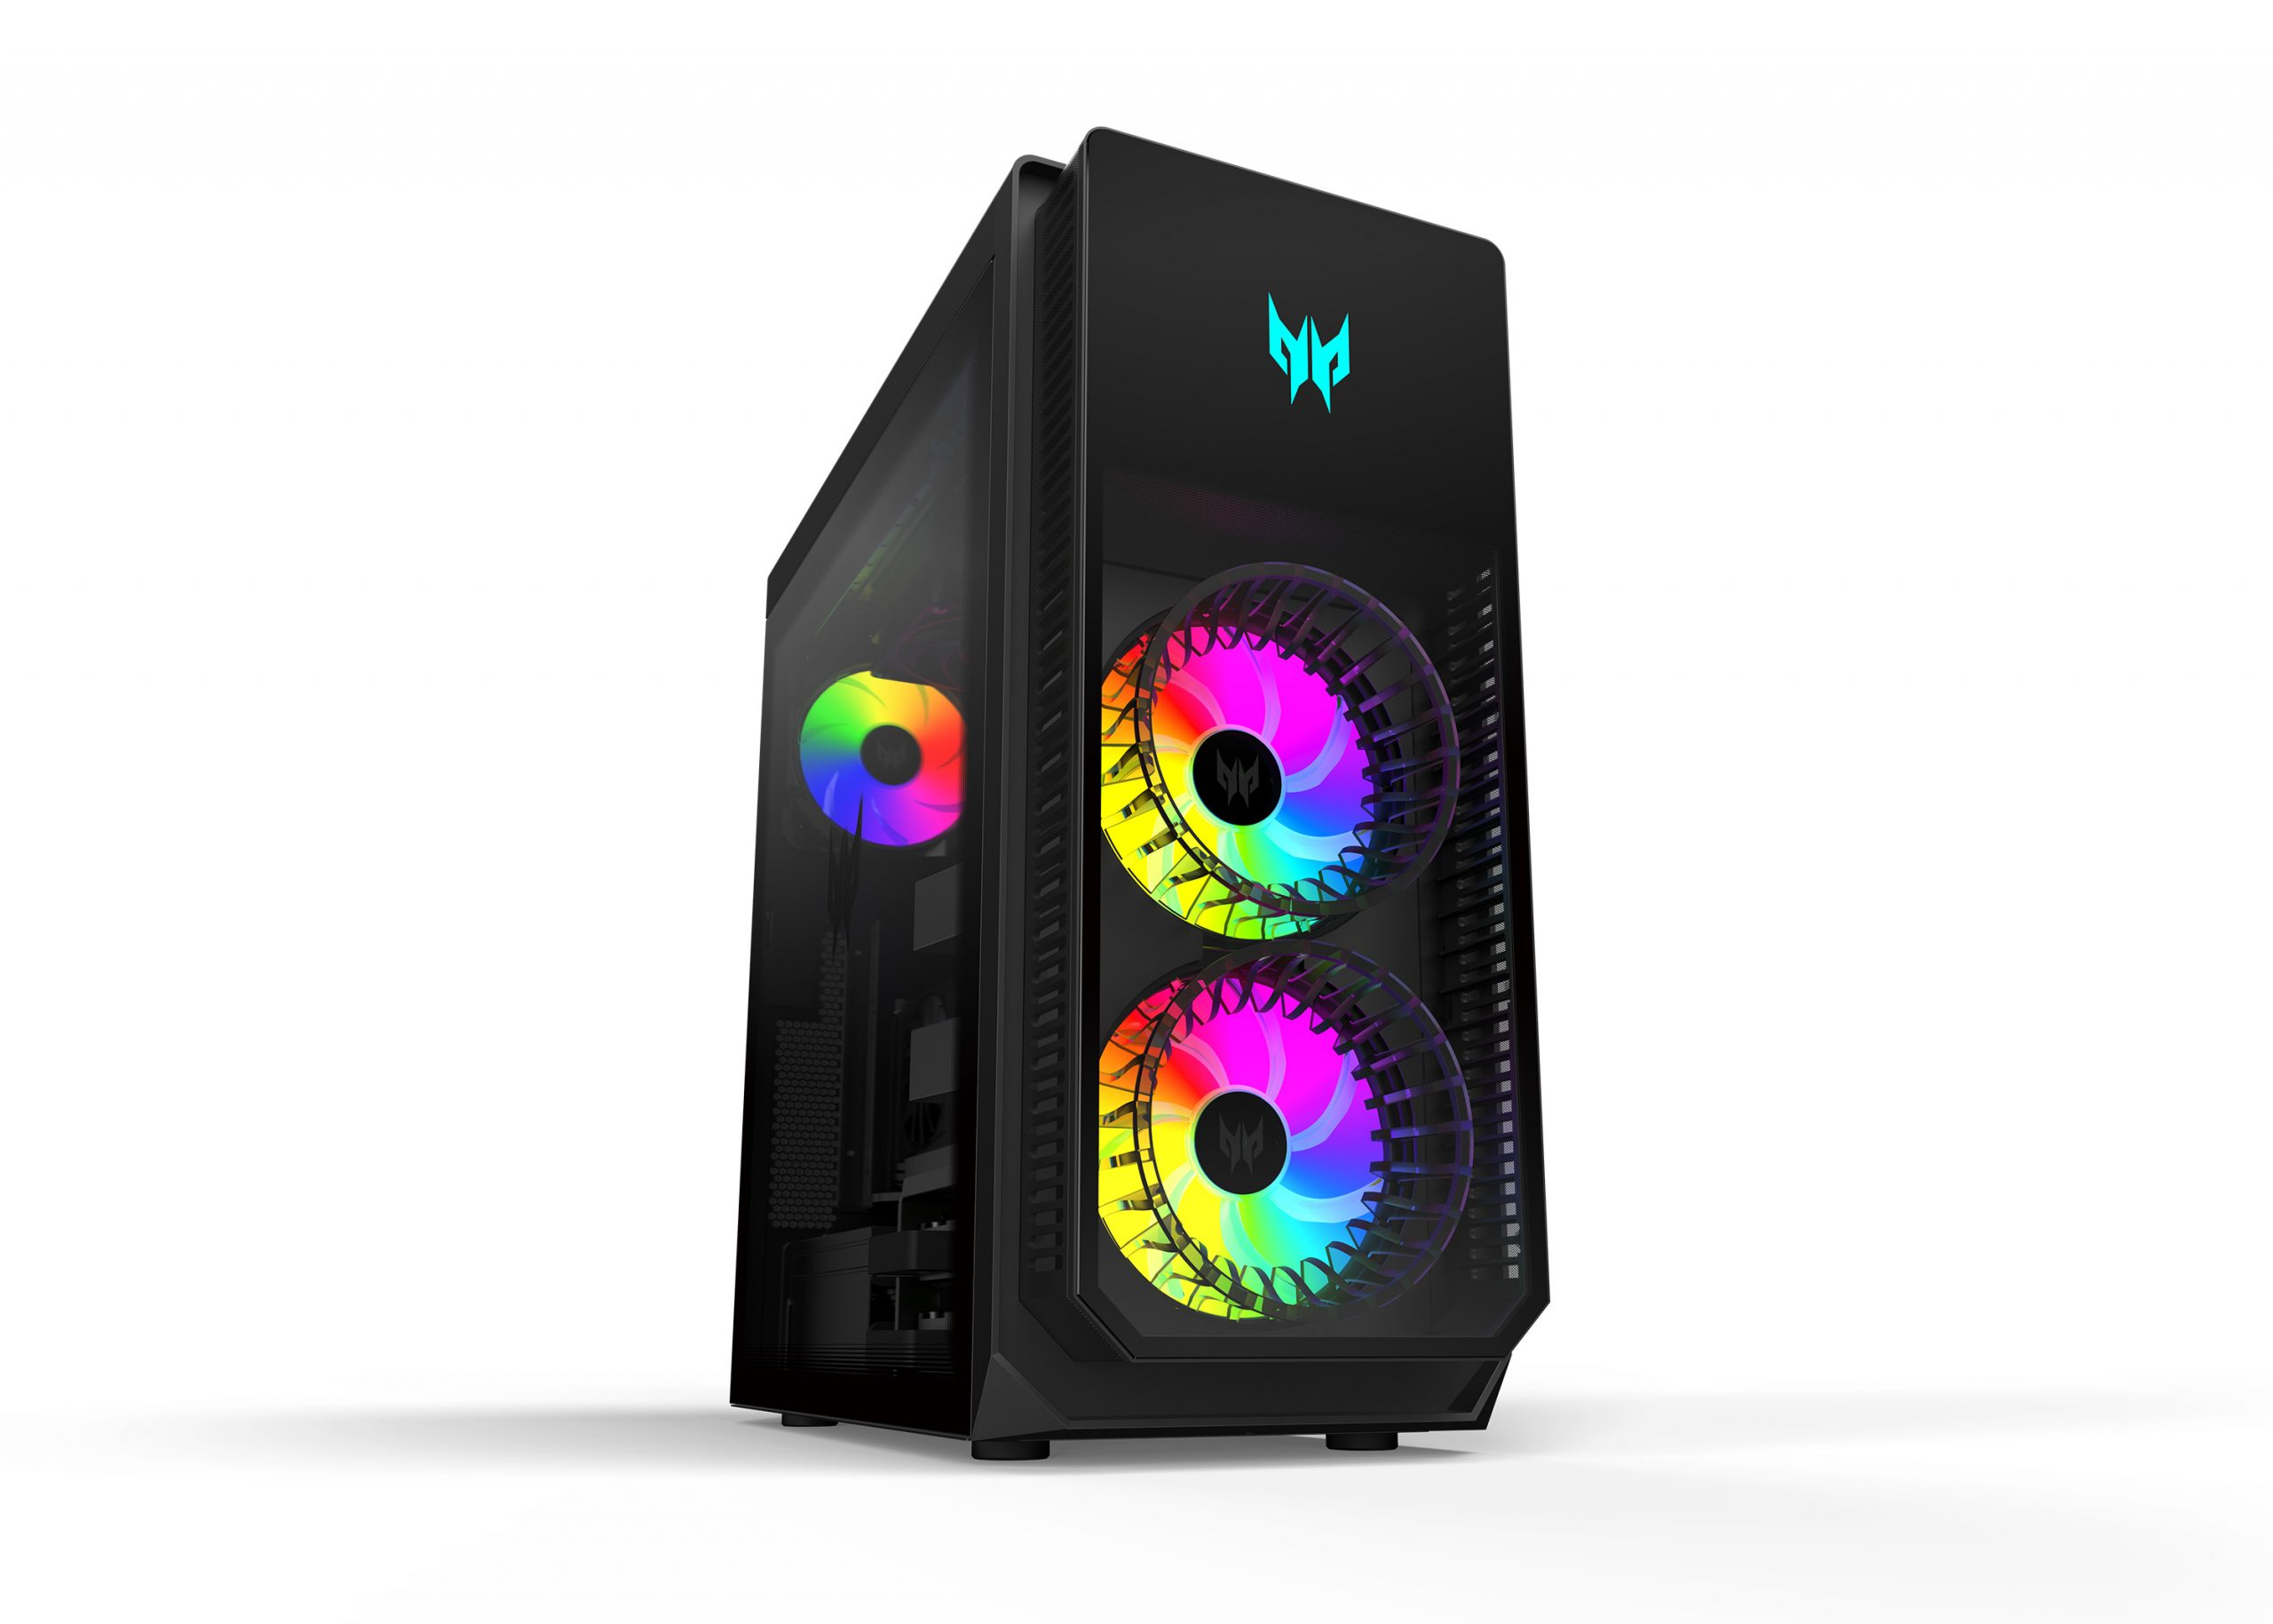 The Acer Orion 7000 gaming desktop with the LED lights displaying a rainbow color wheel